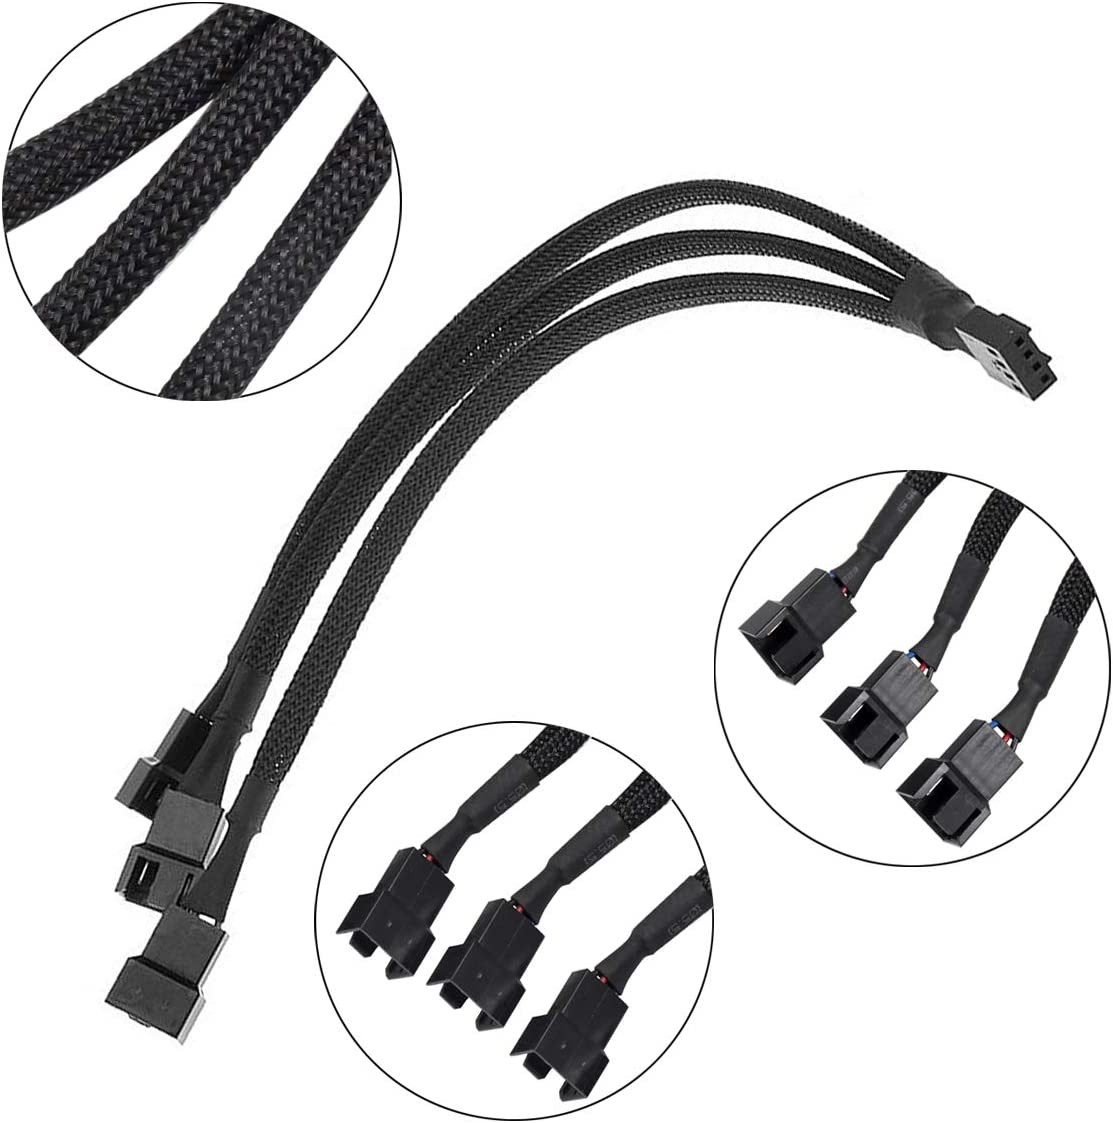 Netspower 4 Pcs Fan Splitter Cable PWM 1 to 3 Converter 4 Pin Fan Adapter Connector Fan Extension Power Cable Sleeved Fan Hub for Computer PC Motherboard